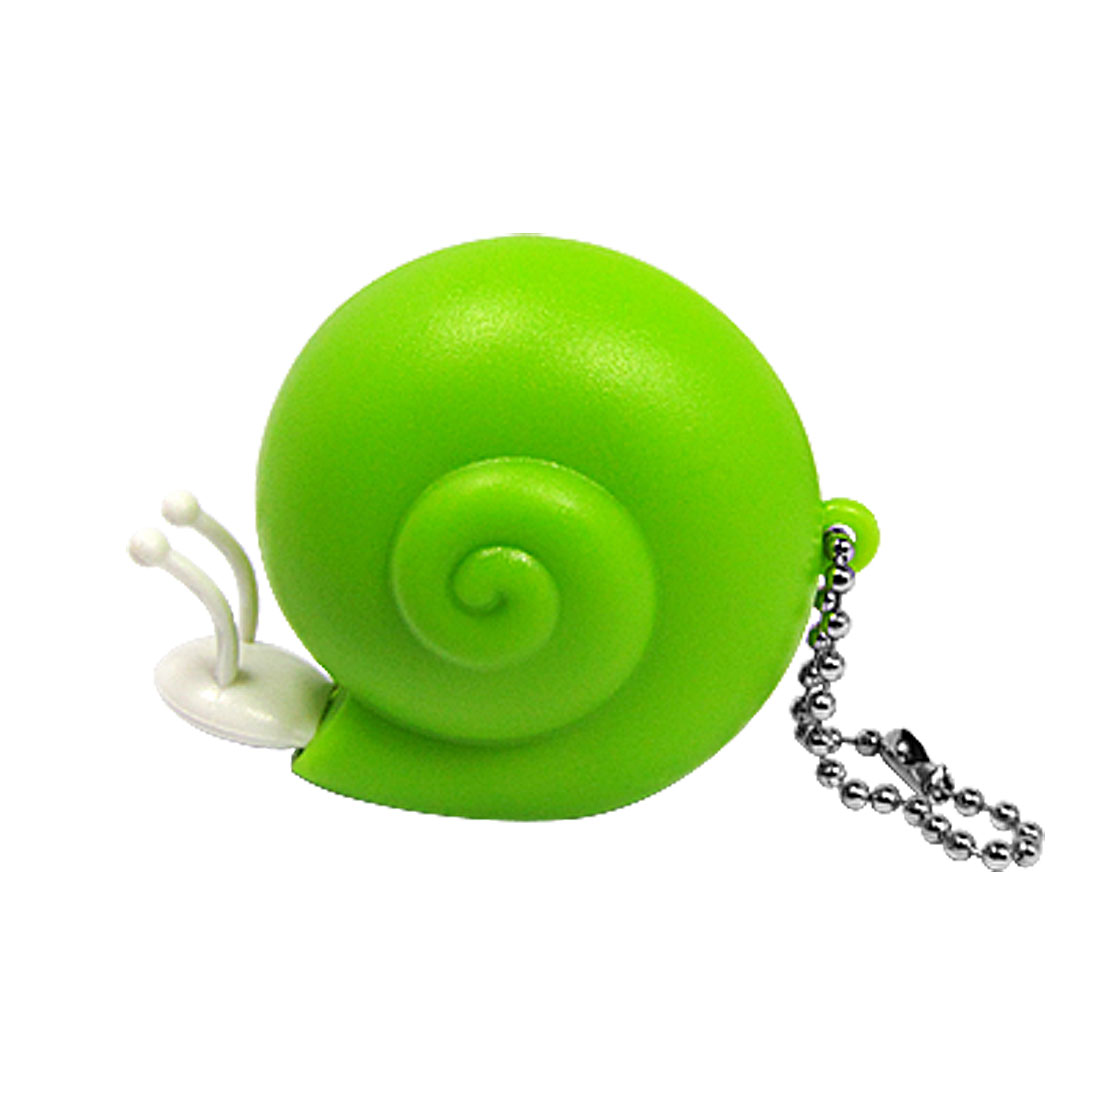 40-Inch-Snail-Retractable-Ruler-Measuring-Tape-Green